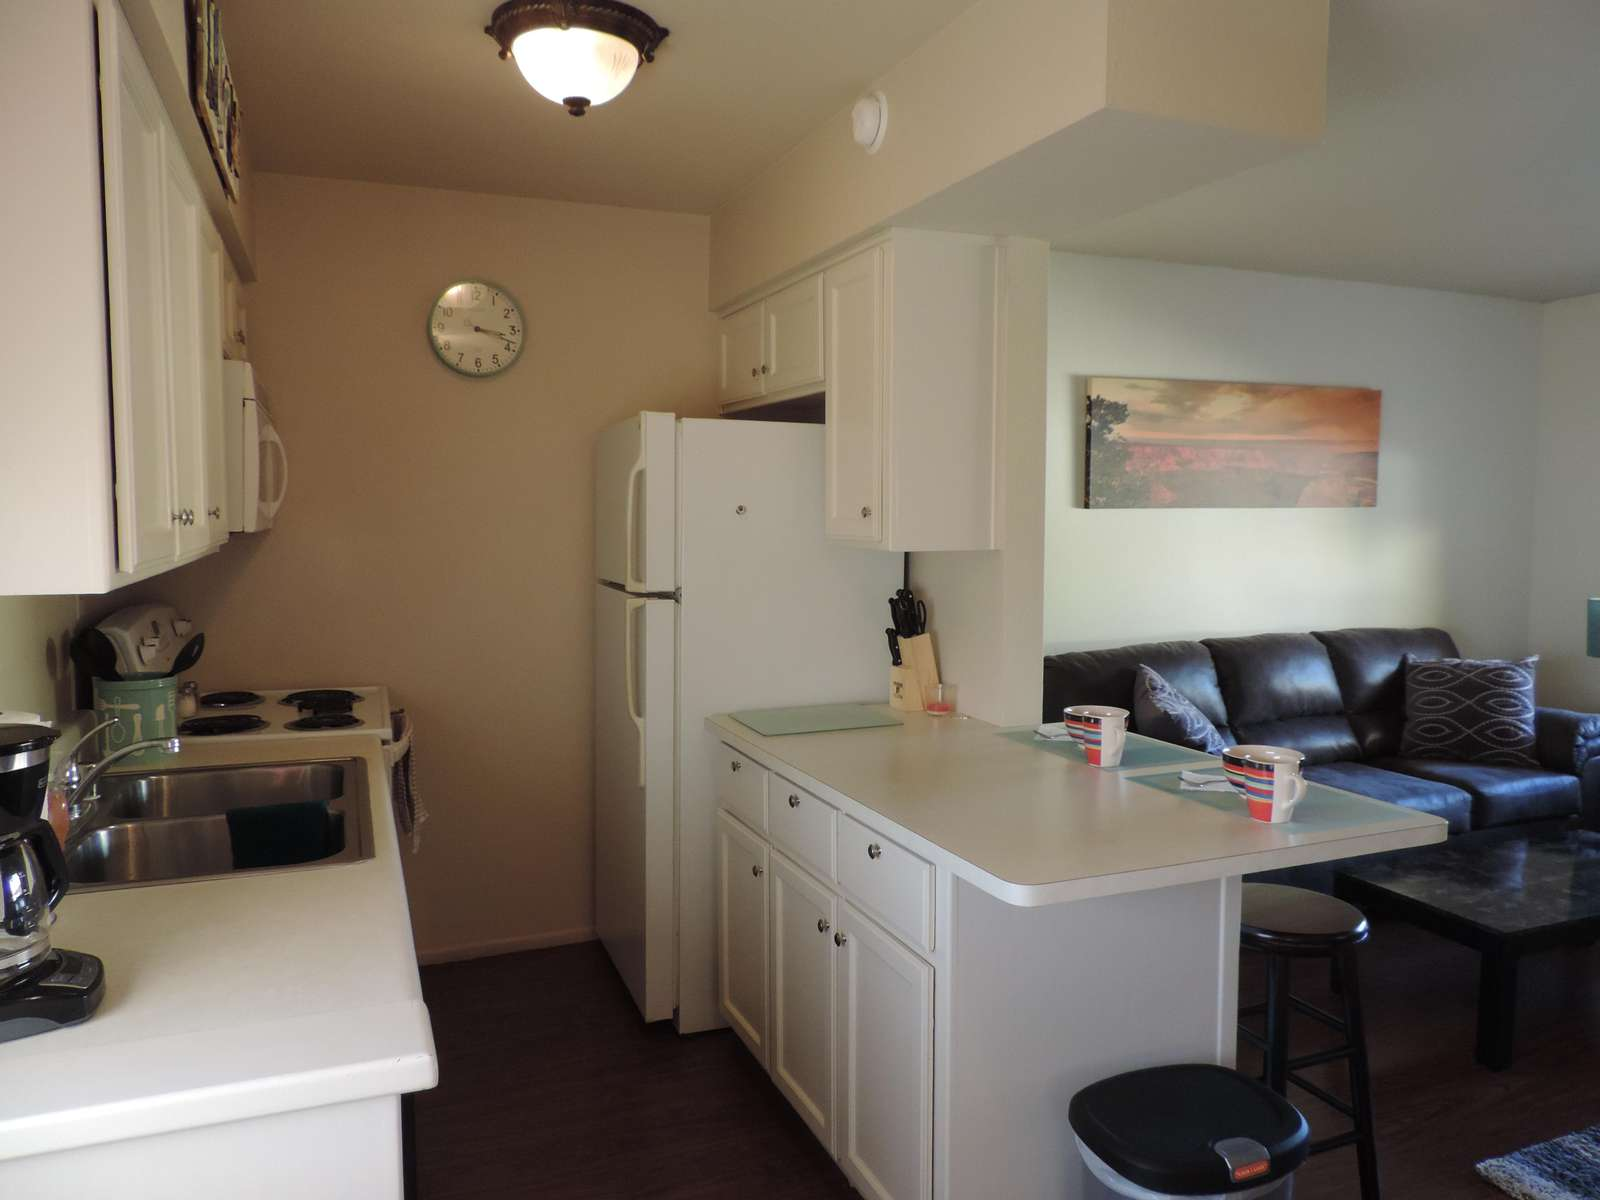 Galley Kitchen has all you will need for your stay